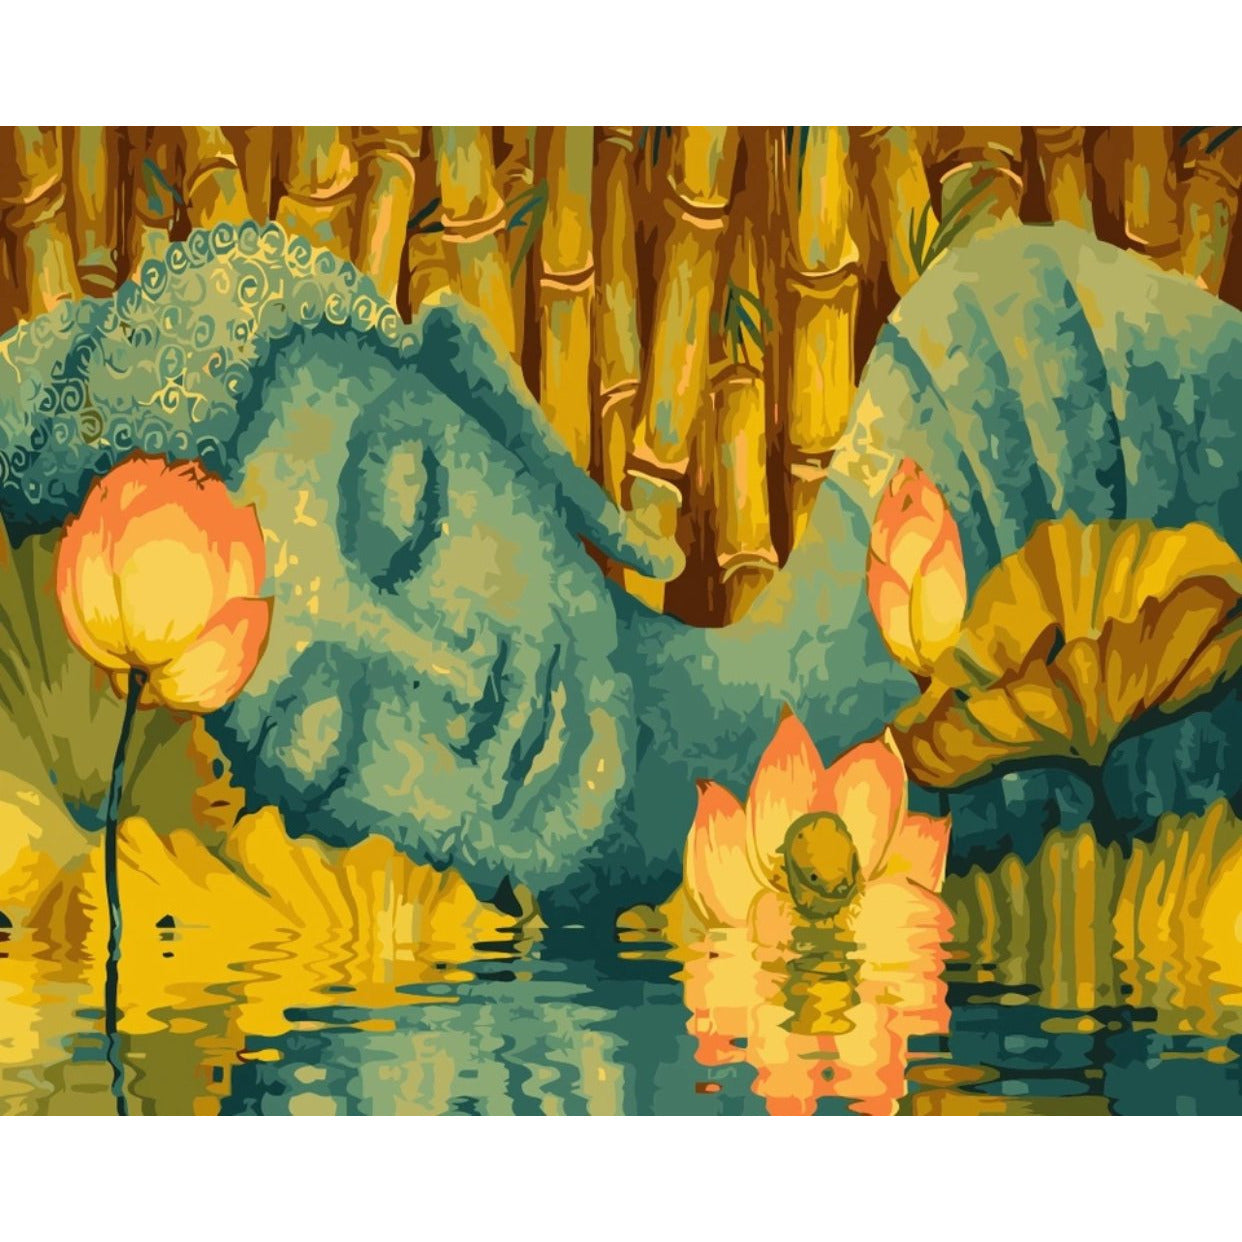 Sleeping Buddha - DIY Painting By Numbers Kit